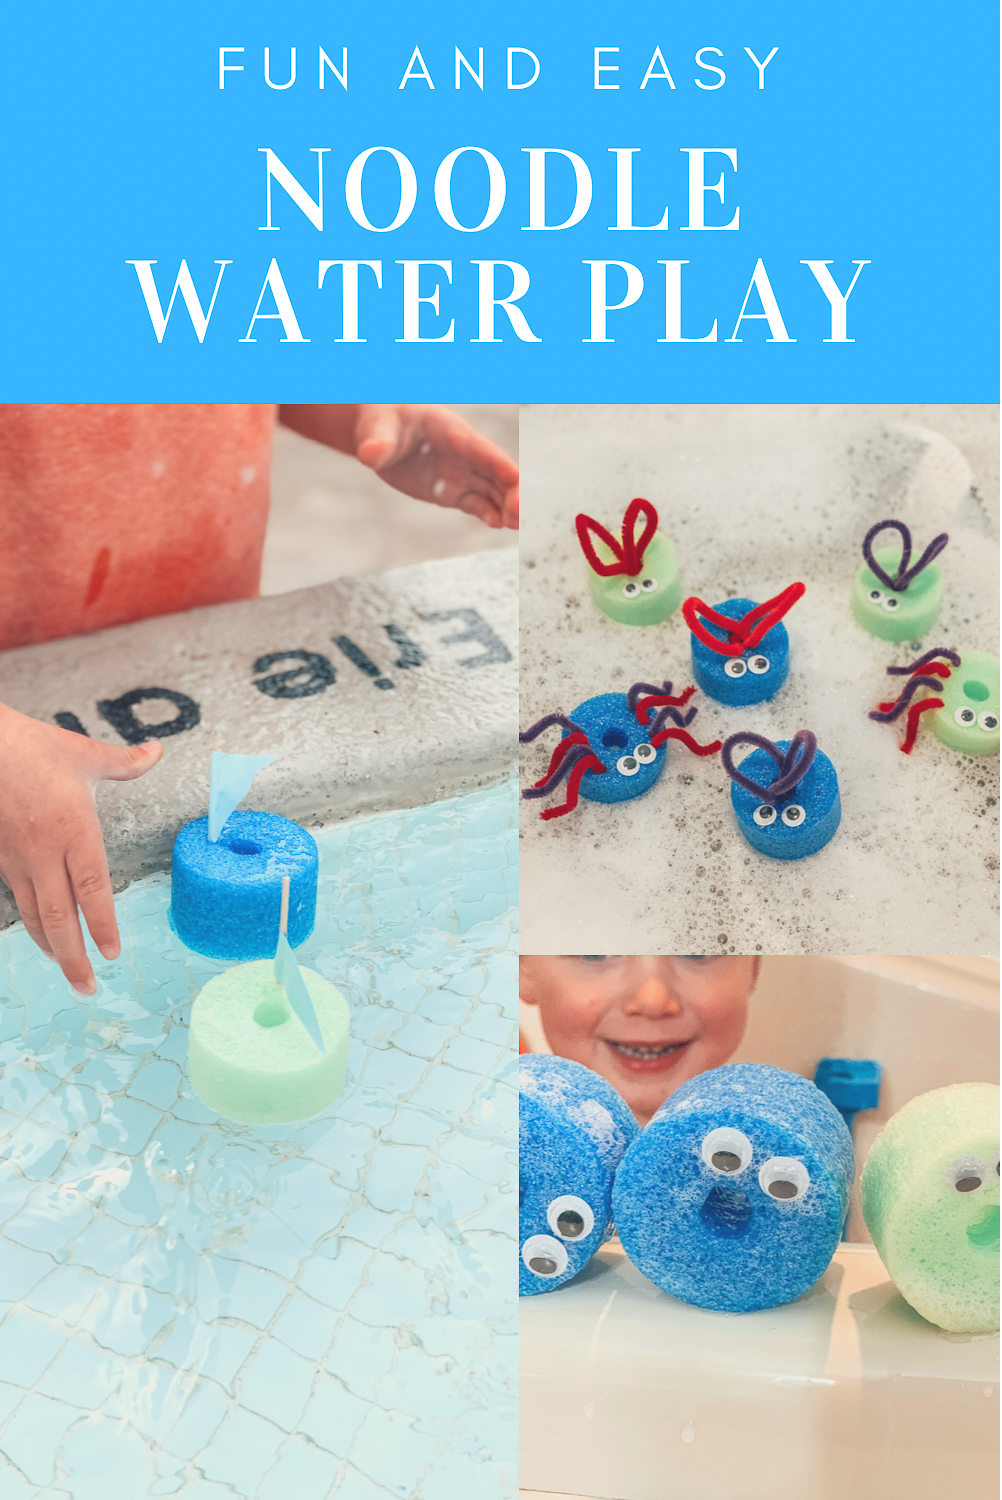 Noodle Water Play